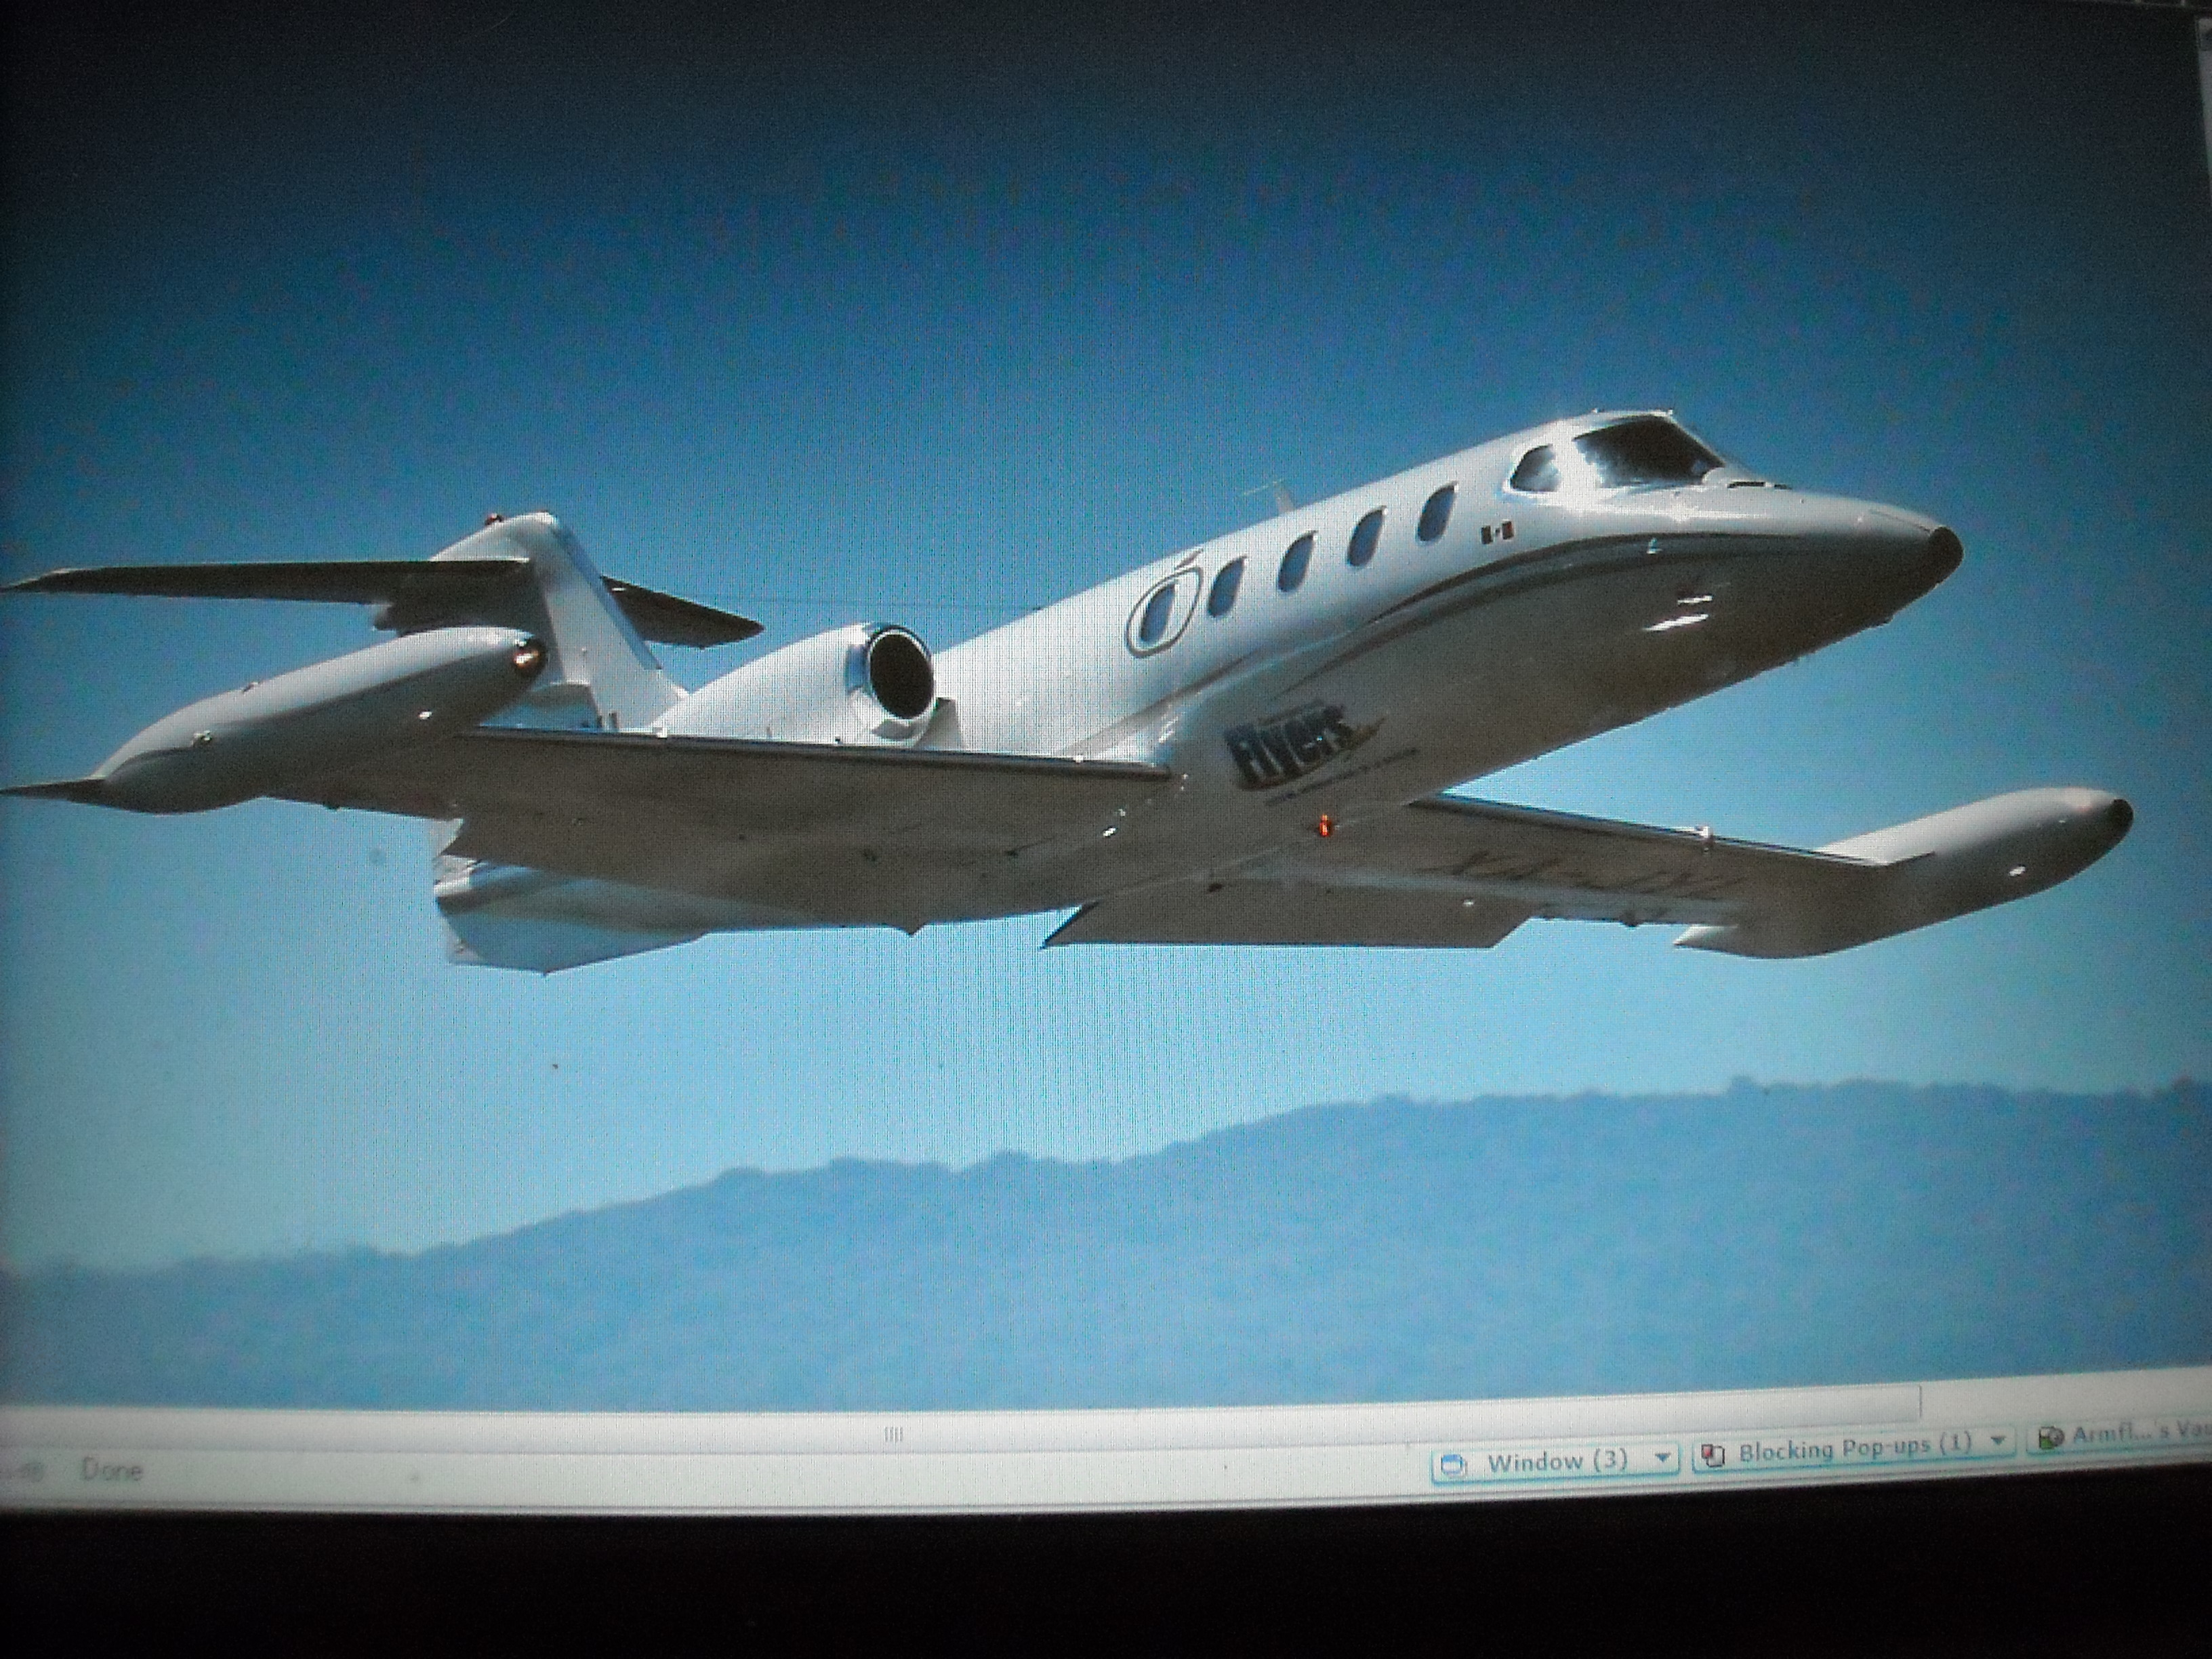 12 million dollar Learjet